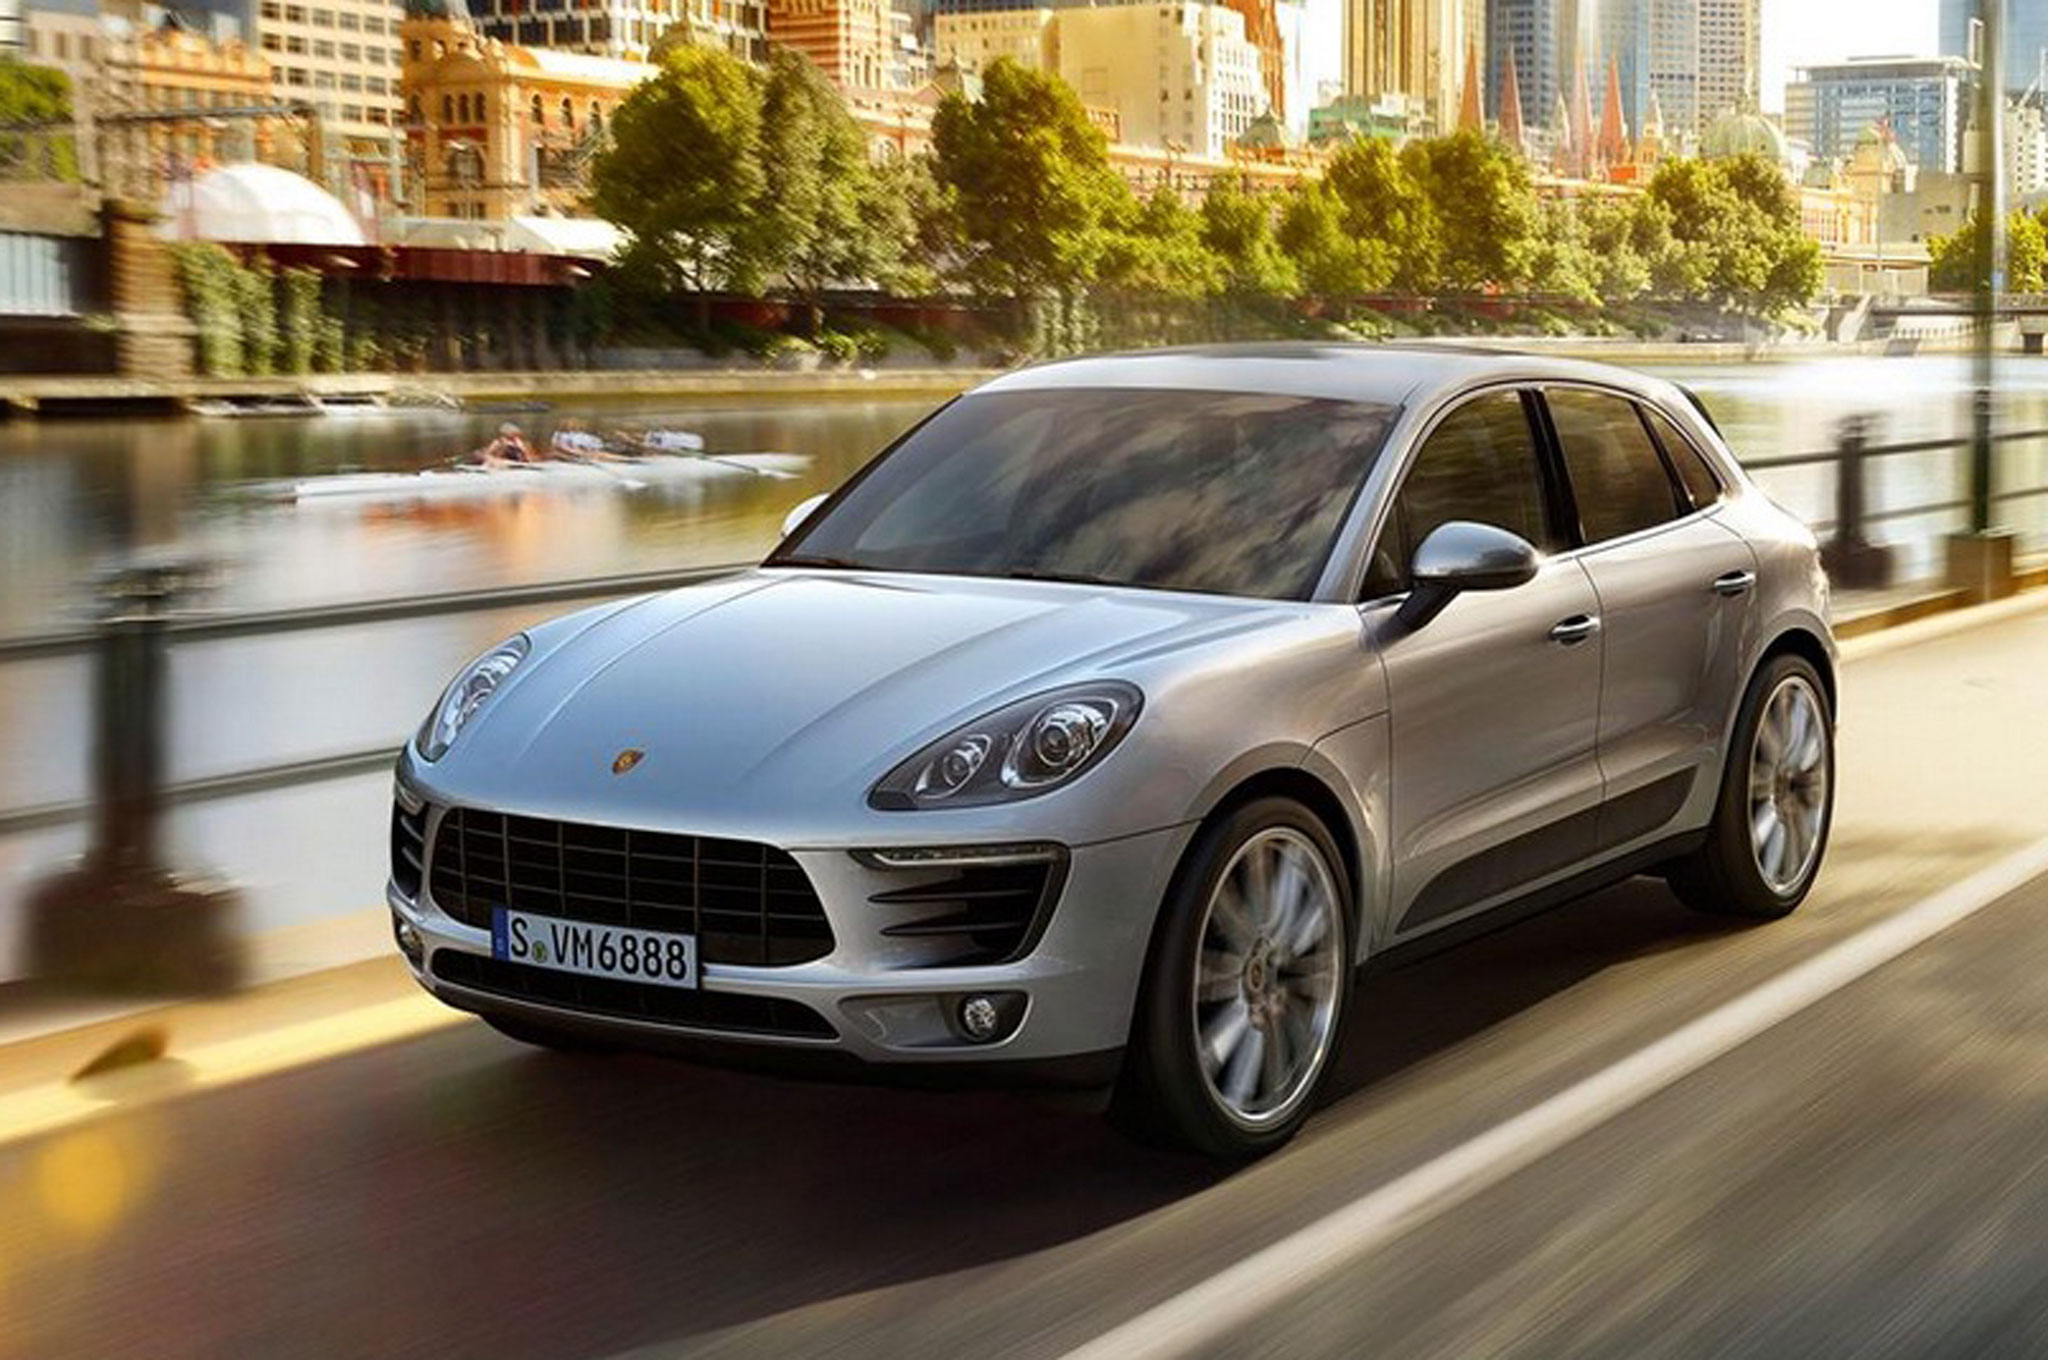 Porsche Macan Buyers Can Lease Boxster, Cayman While Awaiting Delivery